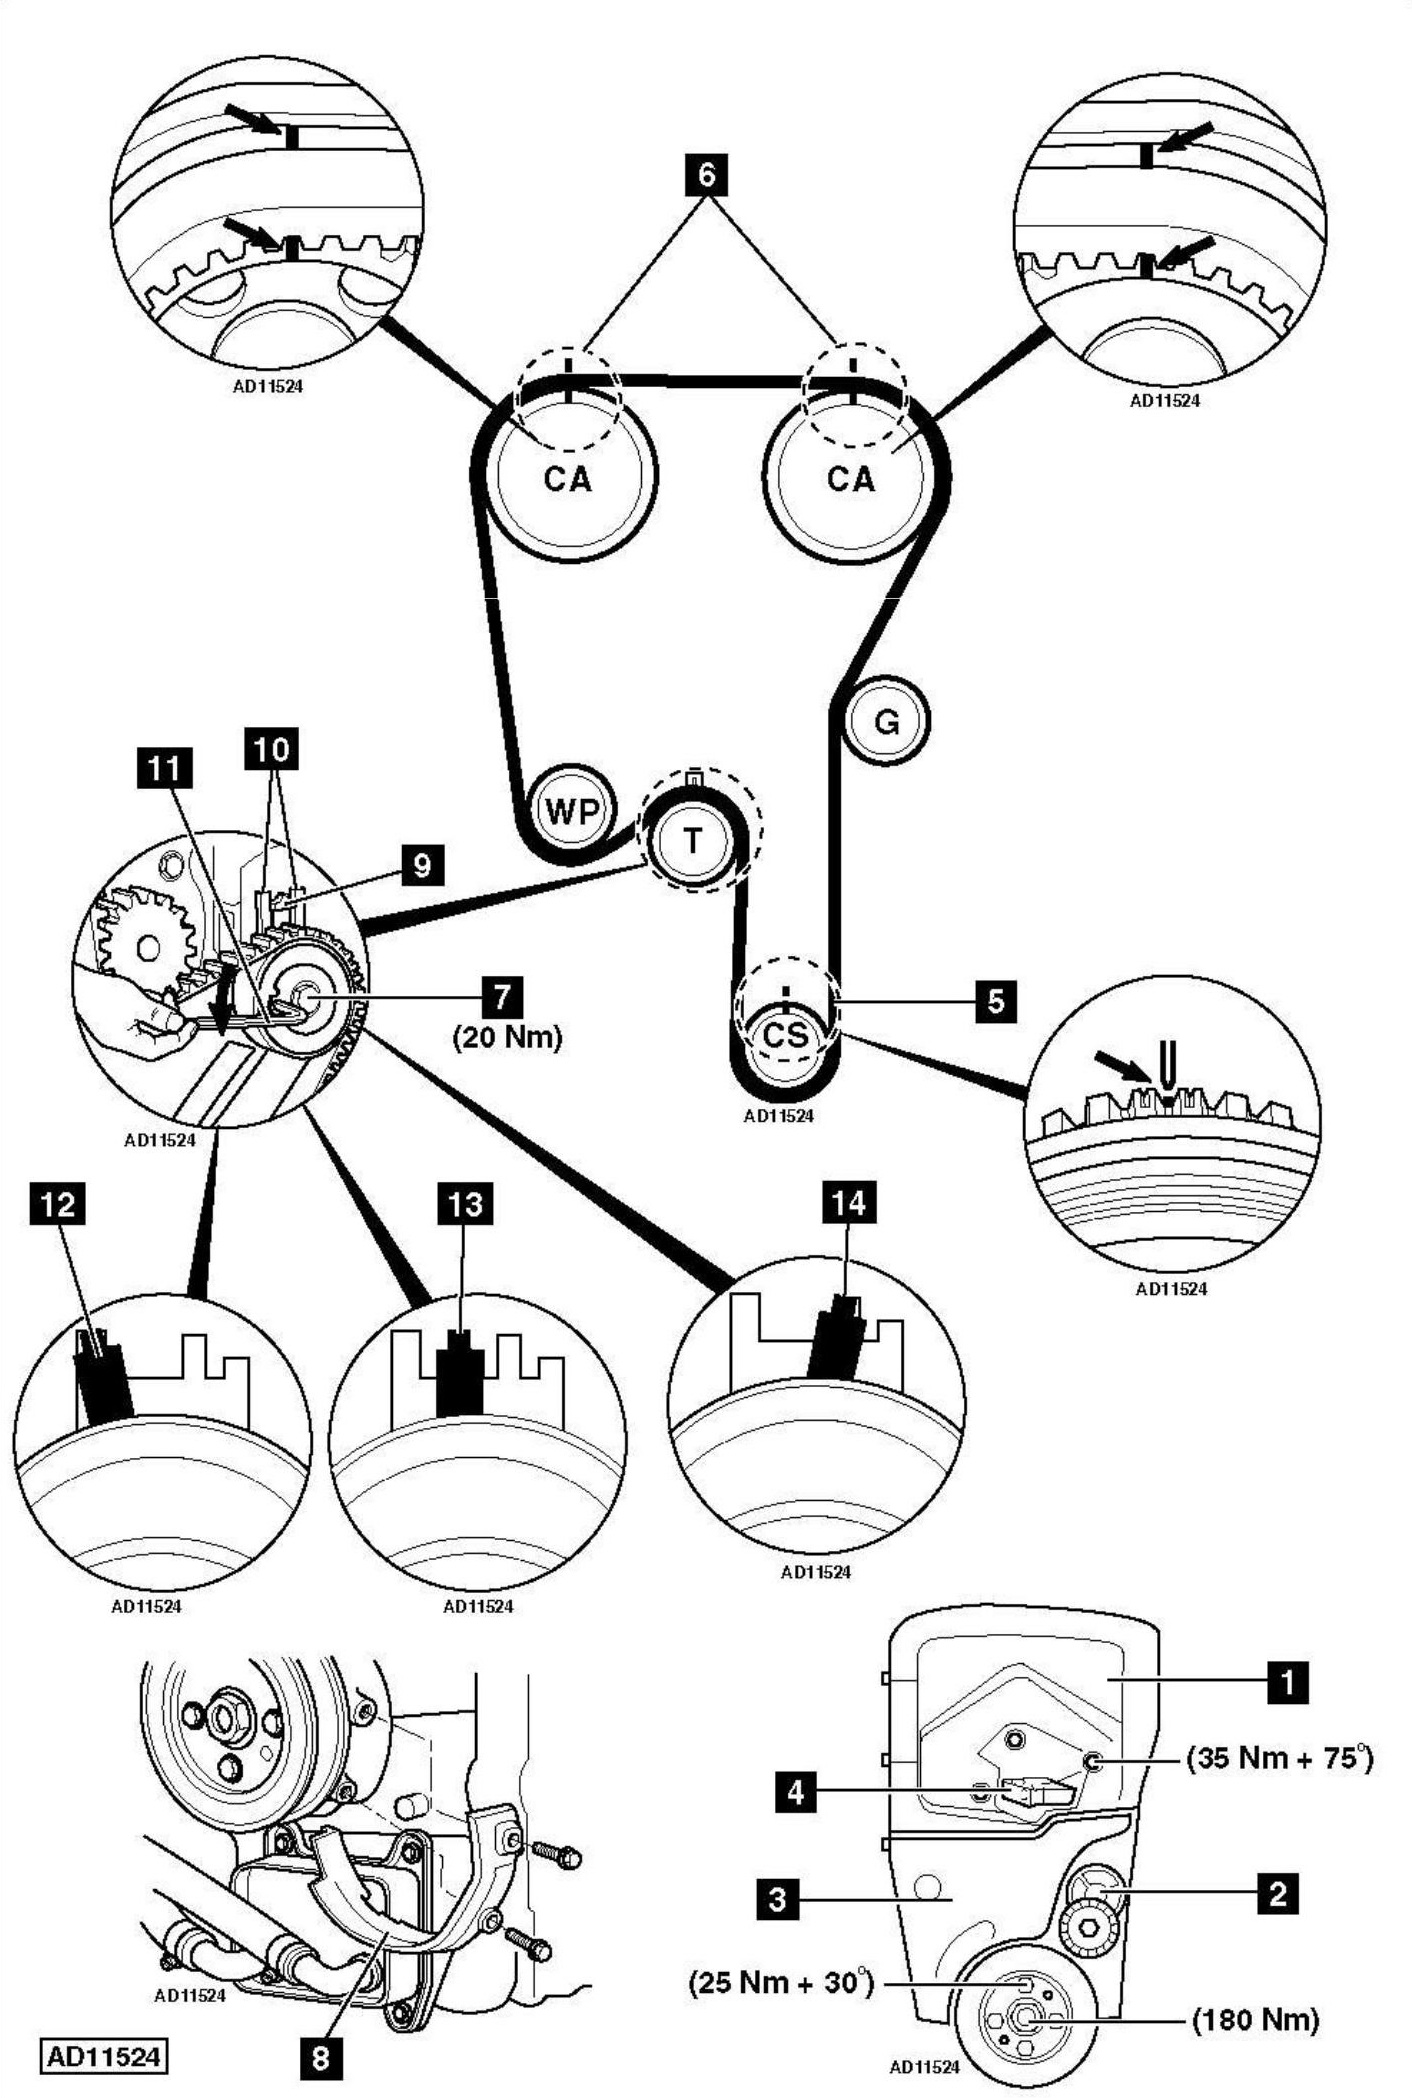 Service manual [2000 Volvo V40 Timing Chain Diagram